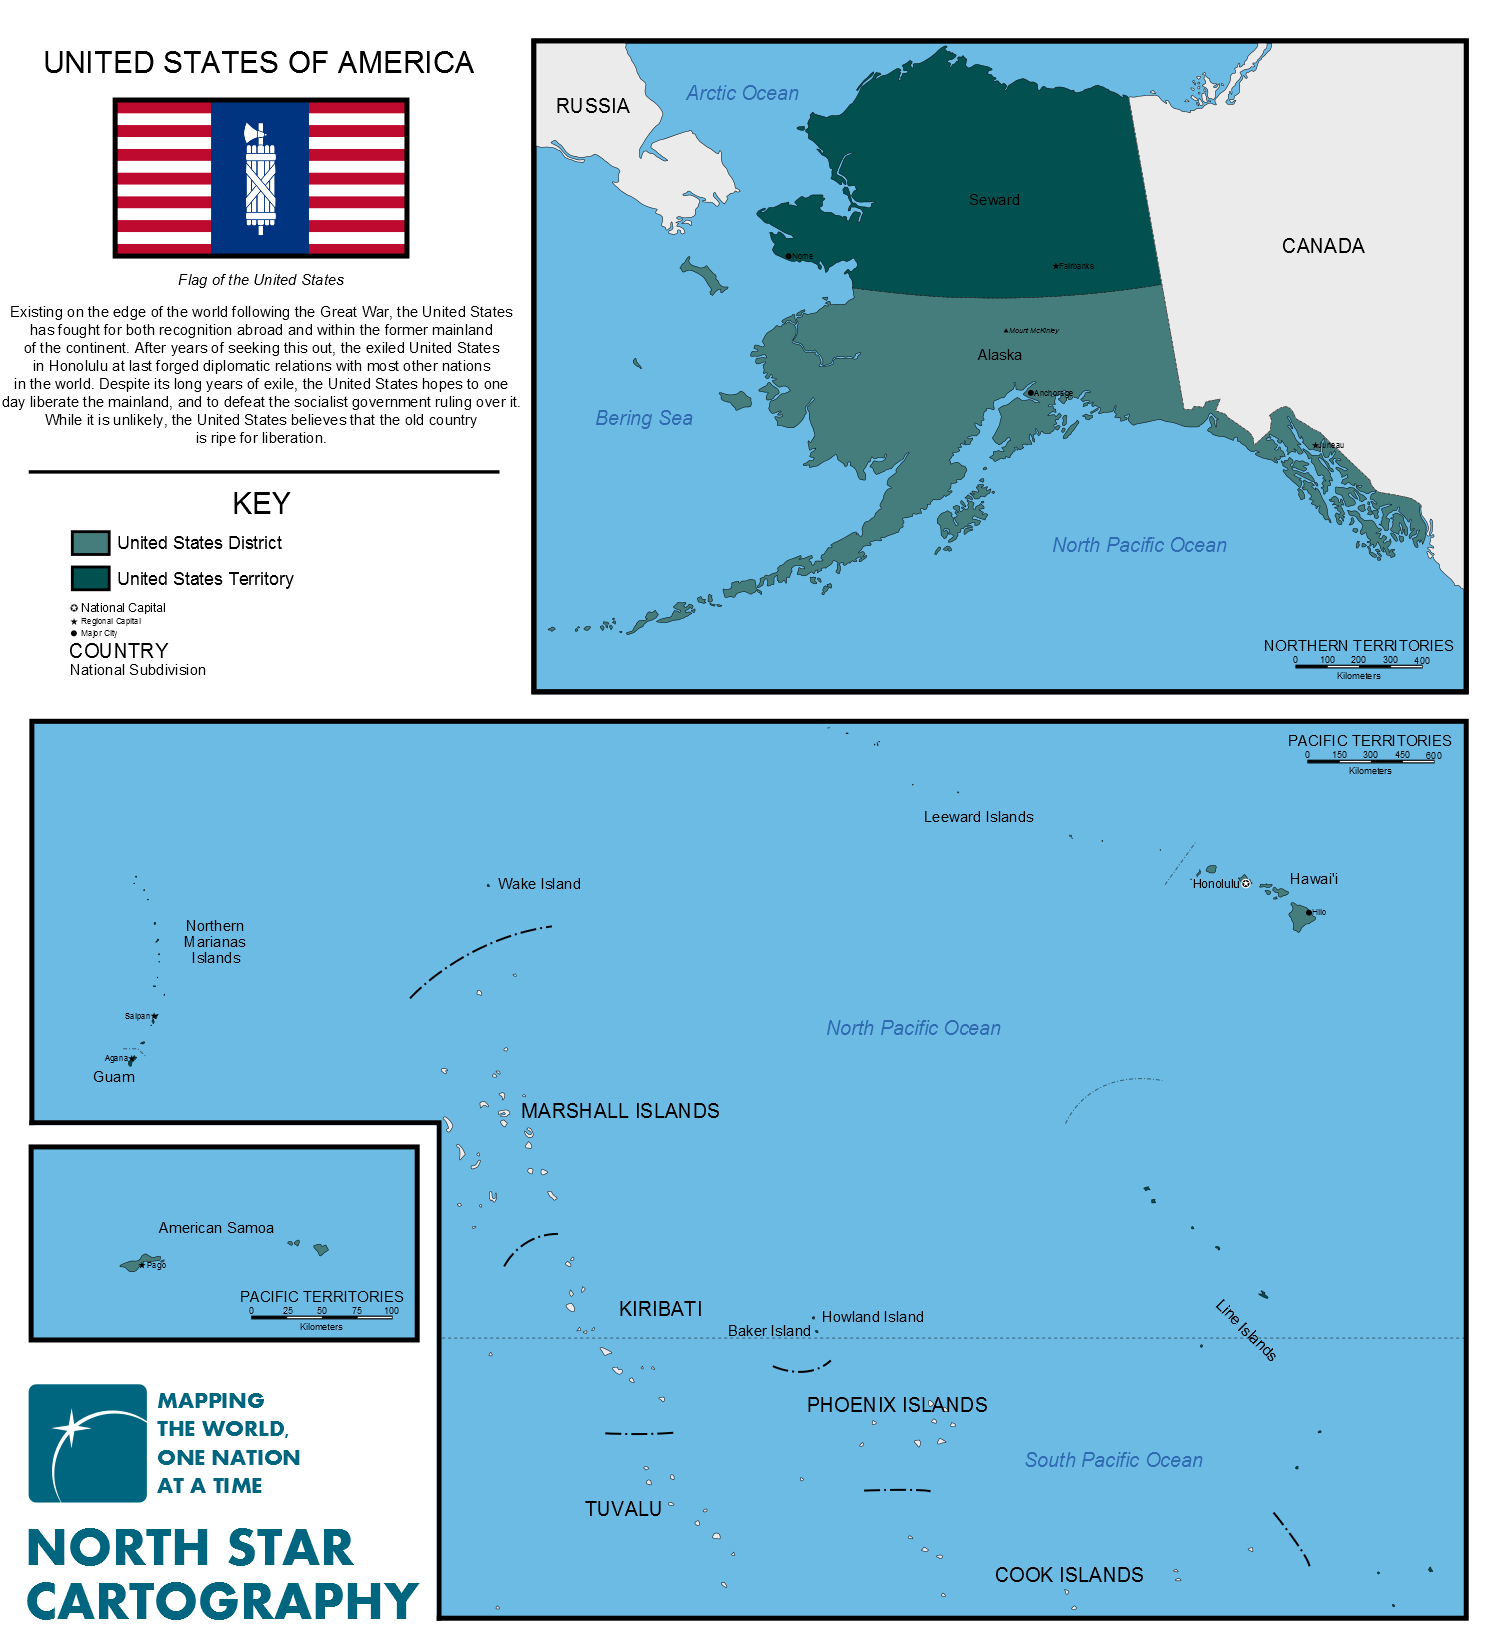 Exiled United States Map By GarudaTeam On DeviantArt - Cook out us map